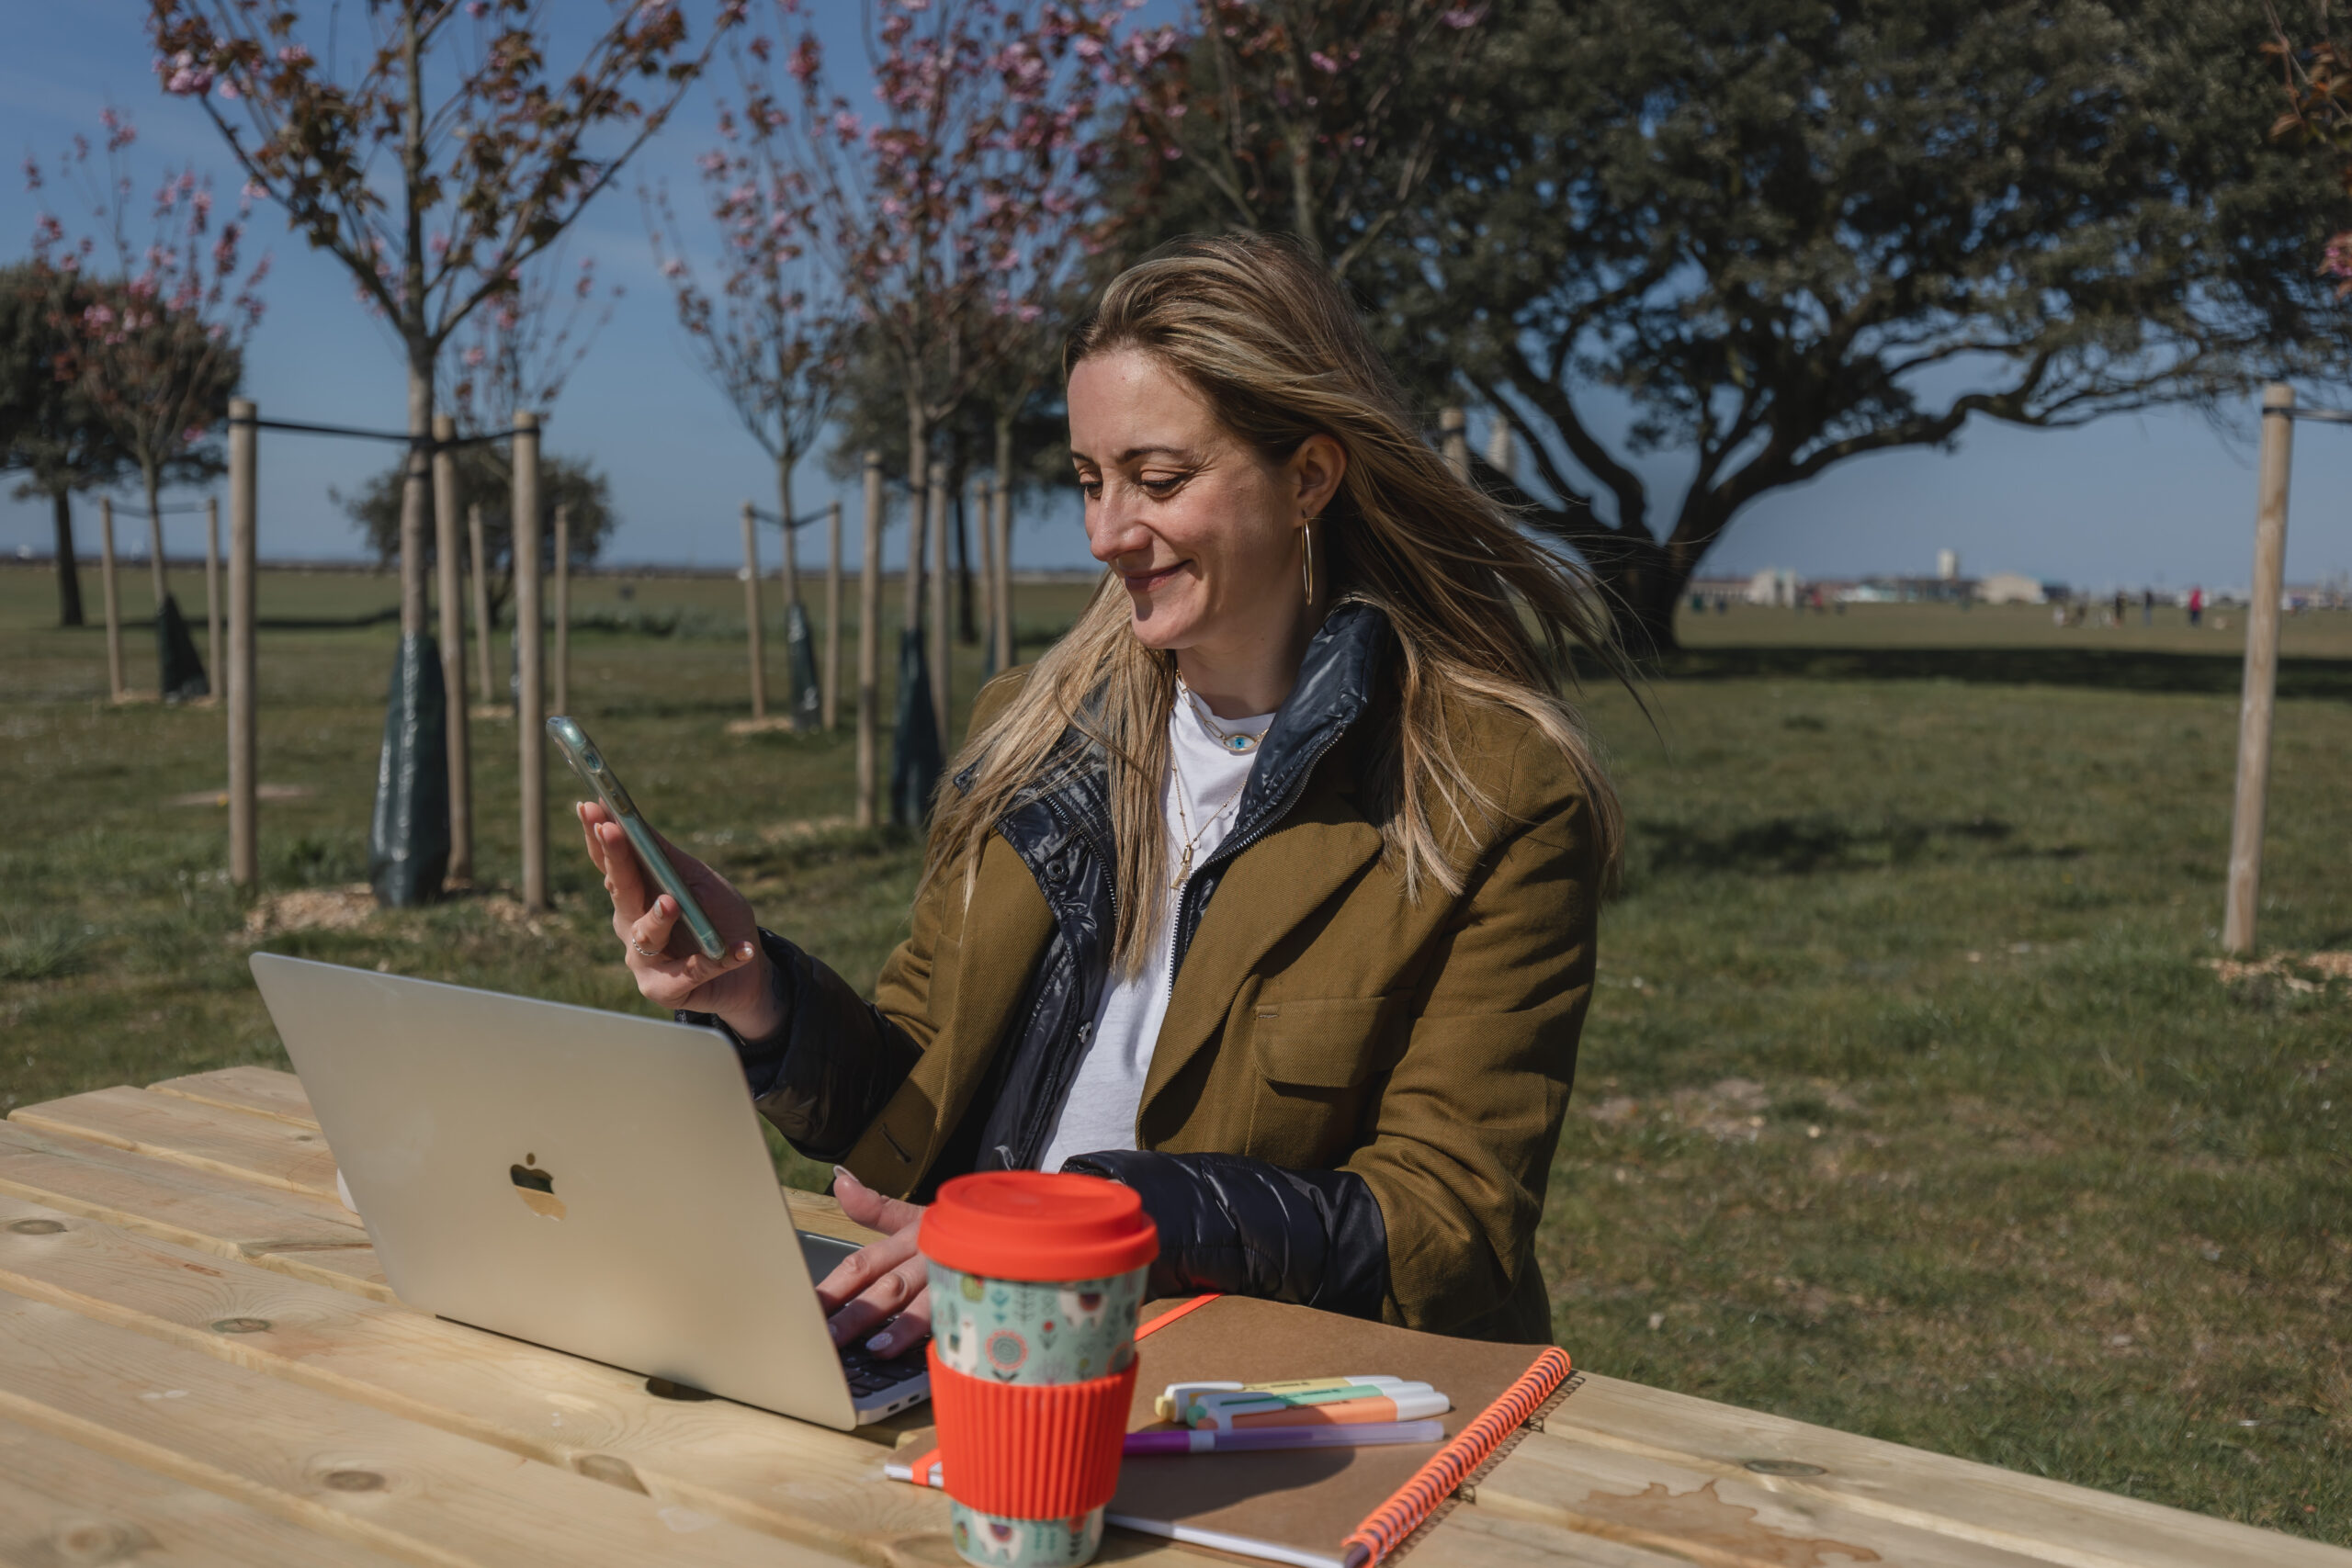 Alanna Smith is looking at her mobile phone. Her laptop is in front of her as well as a coffee cup and a notepad. She is outside sat at a wooden picnic bench.